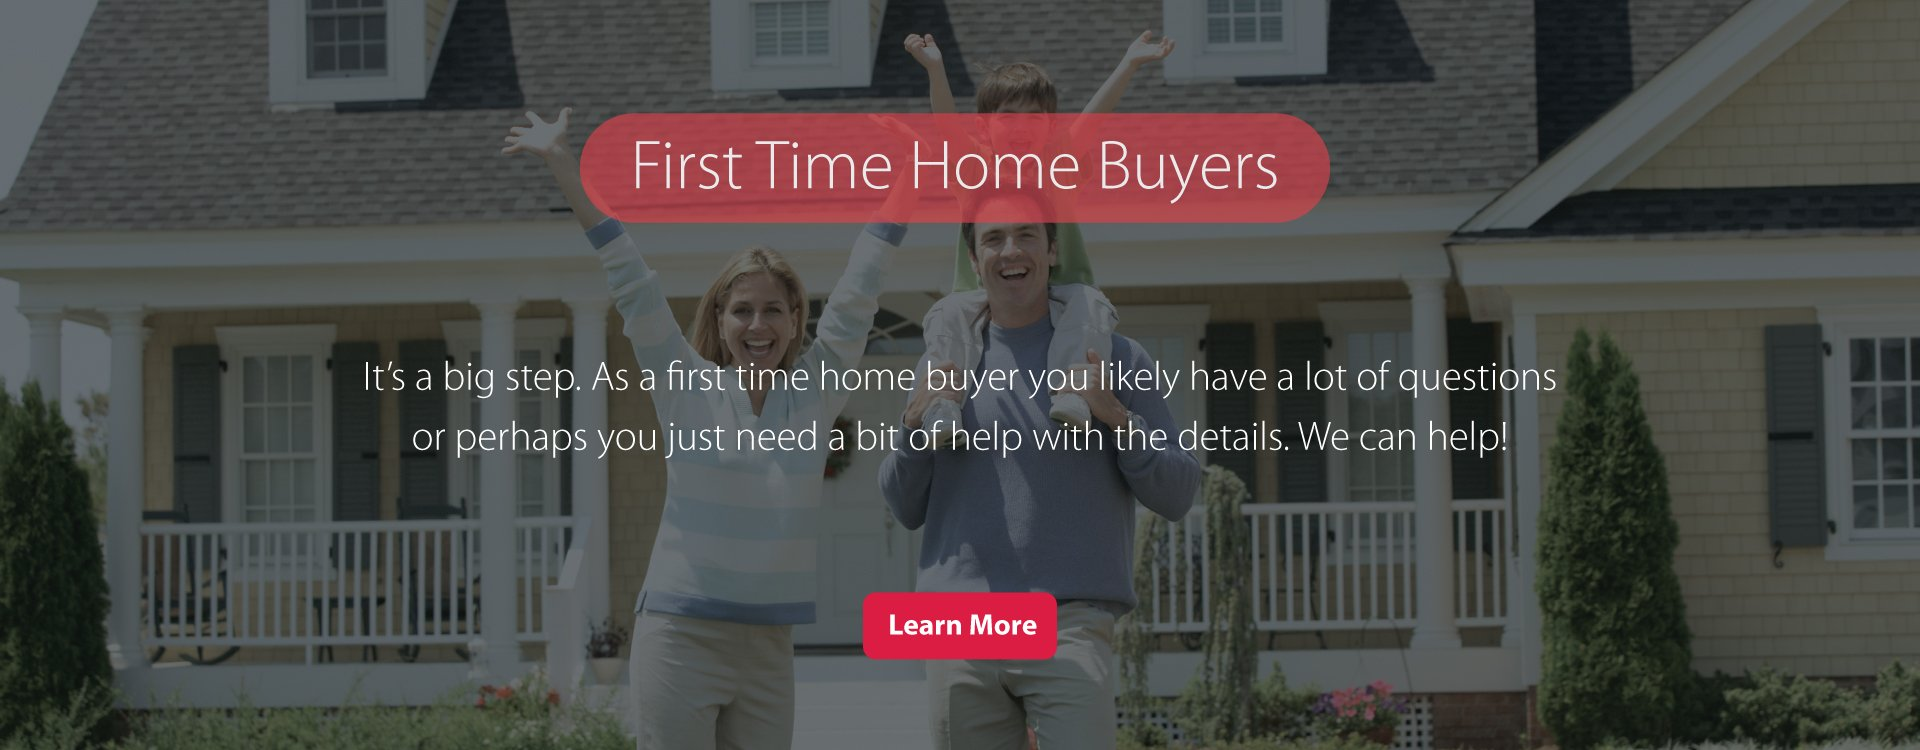 First Time Home Buyers Mortgage - CoCo Mortgage